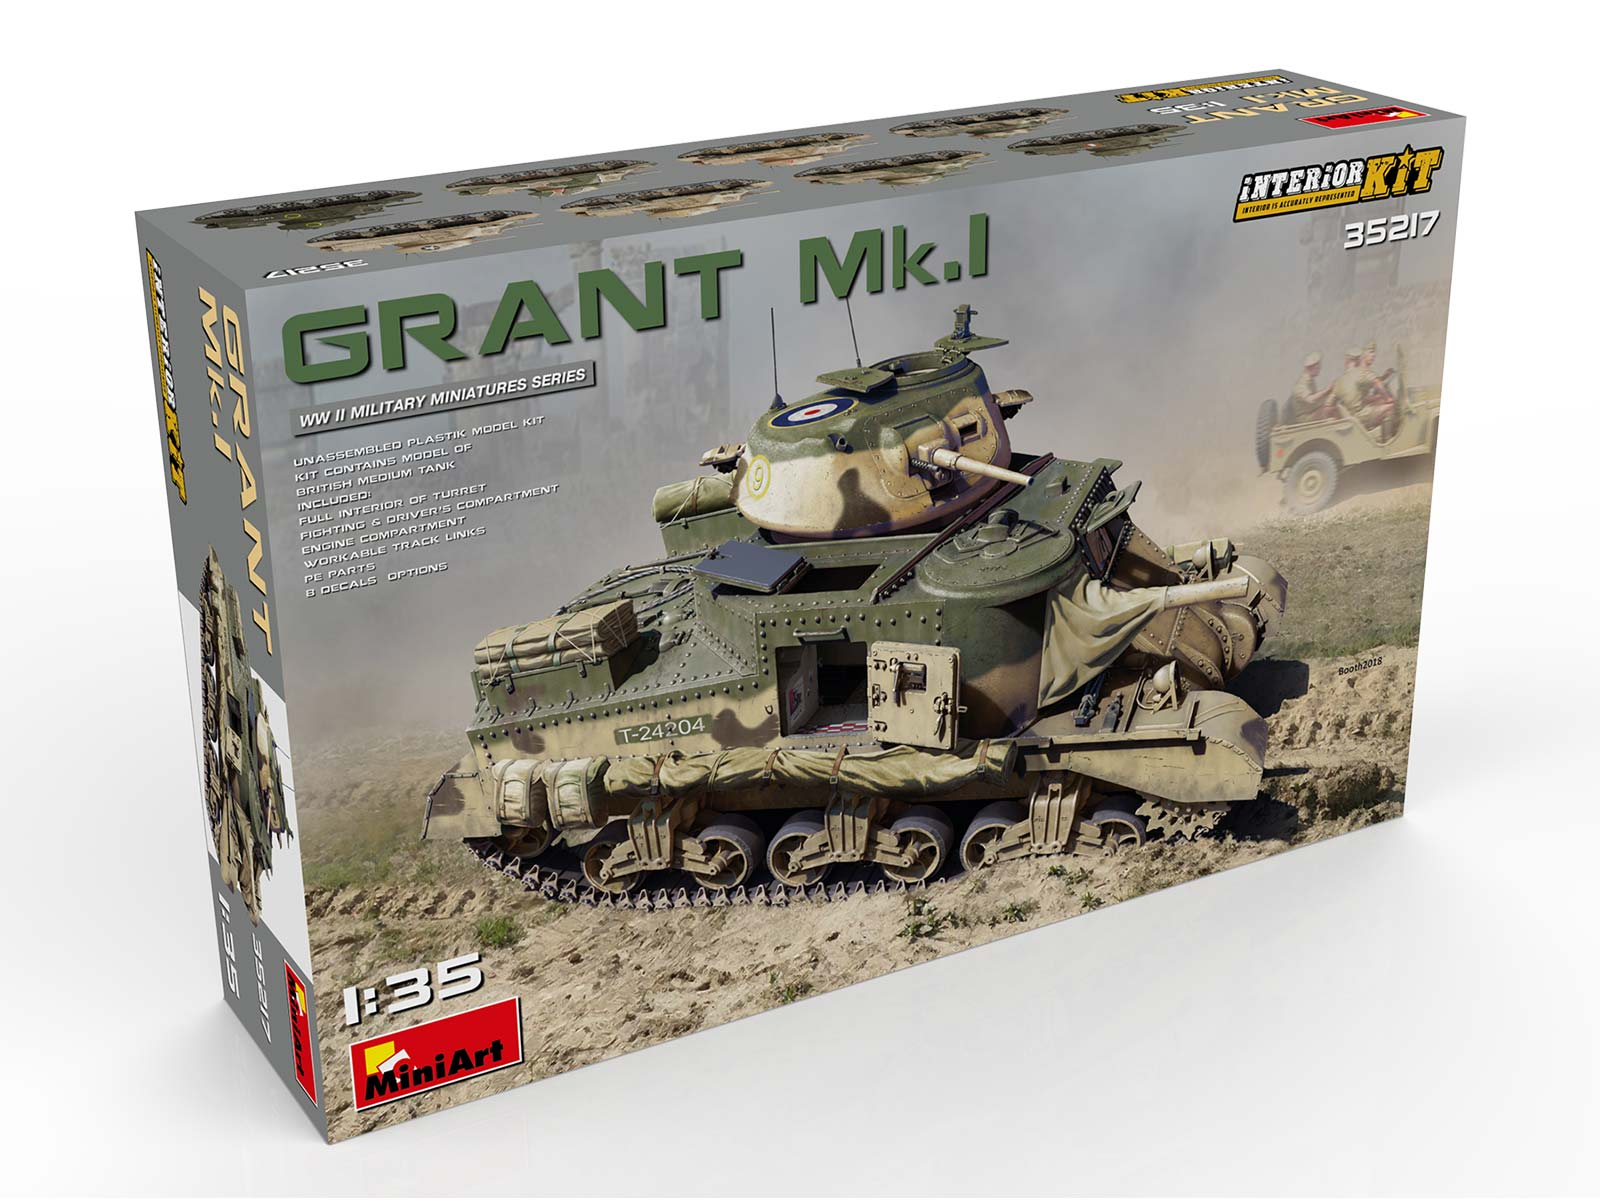 New Photos of Kit: 35217 GRANT Mk.I INTERIOR KIT